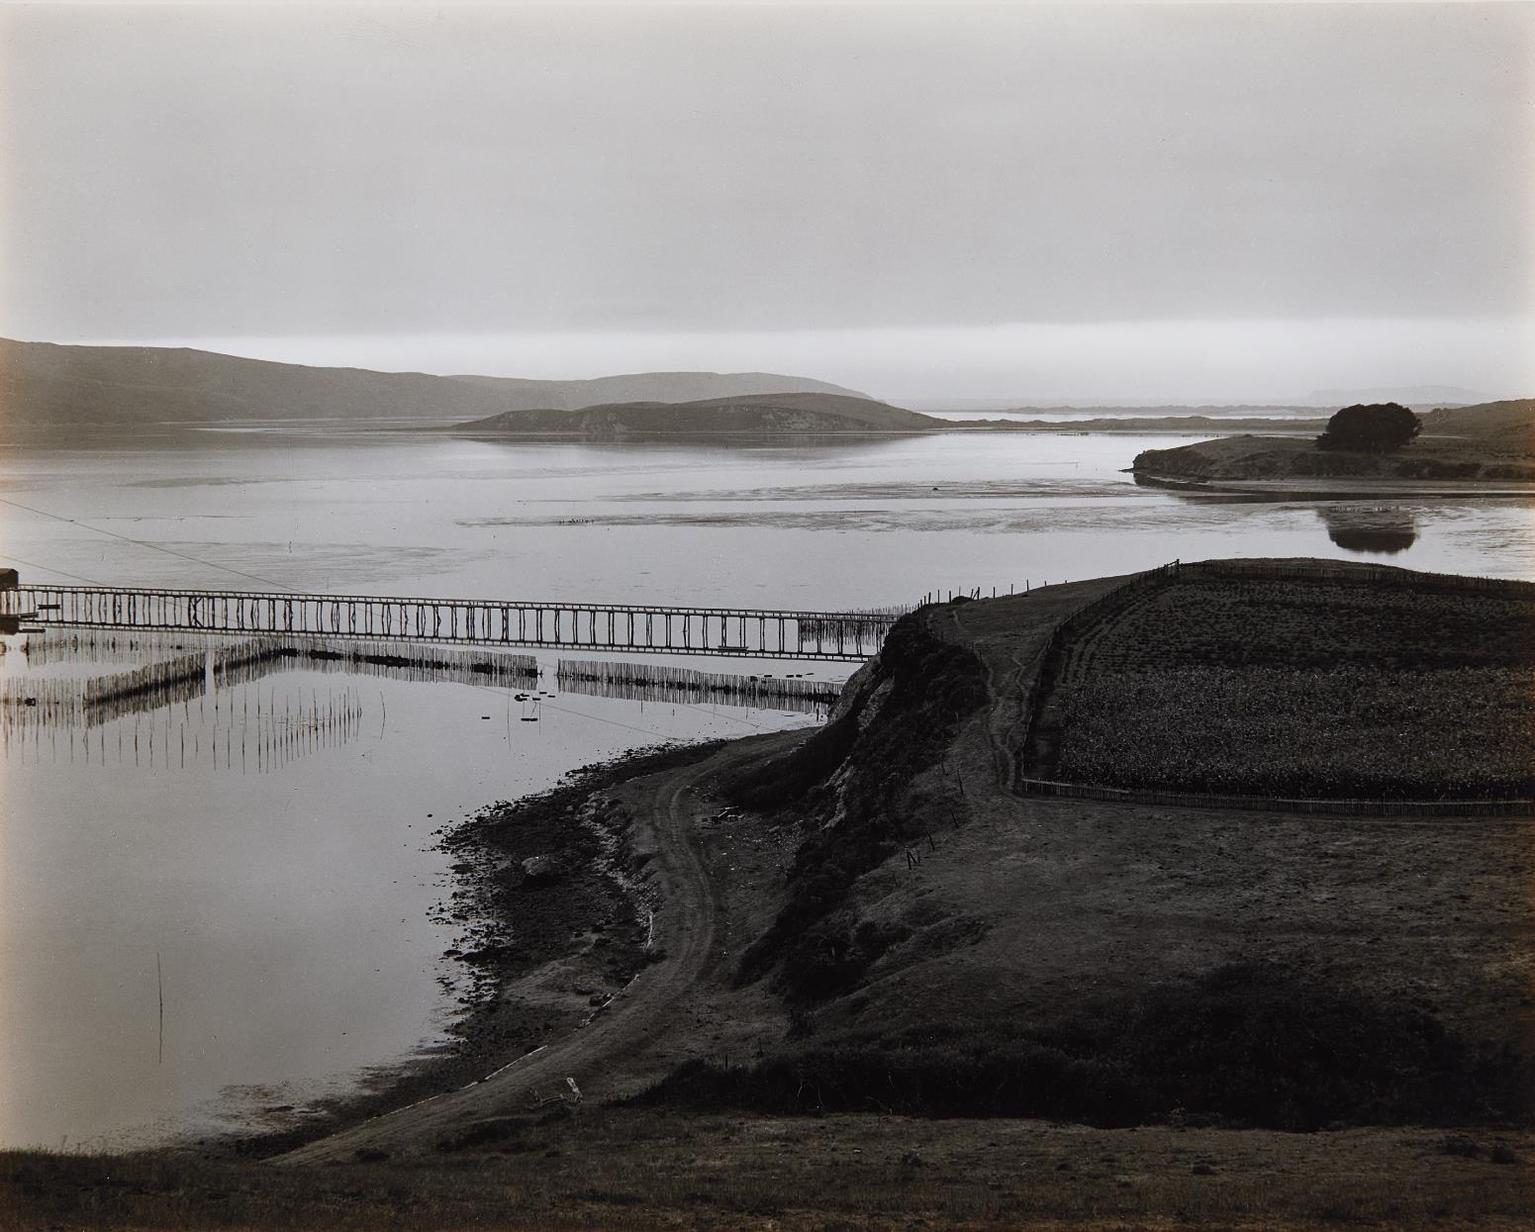 Edward Weston-The Harbor, Tamales Bay-1937